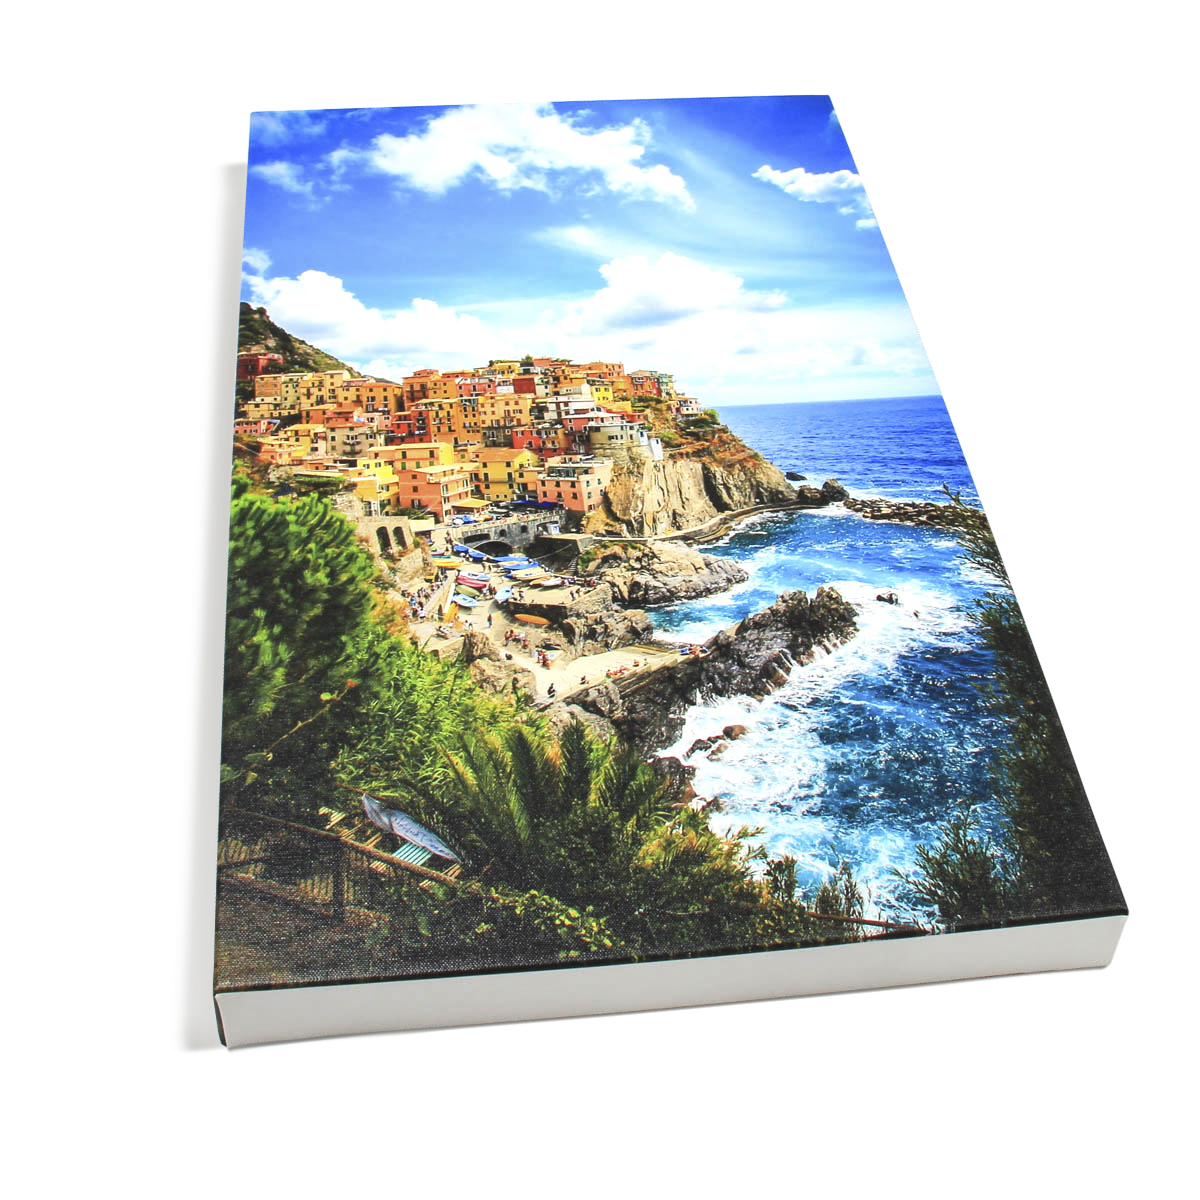 canvas image prints